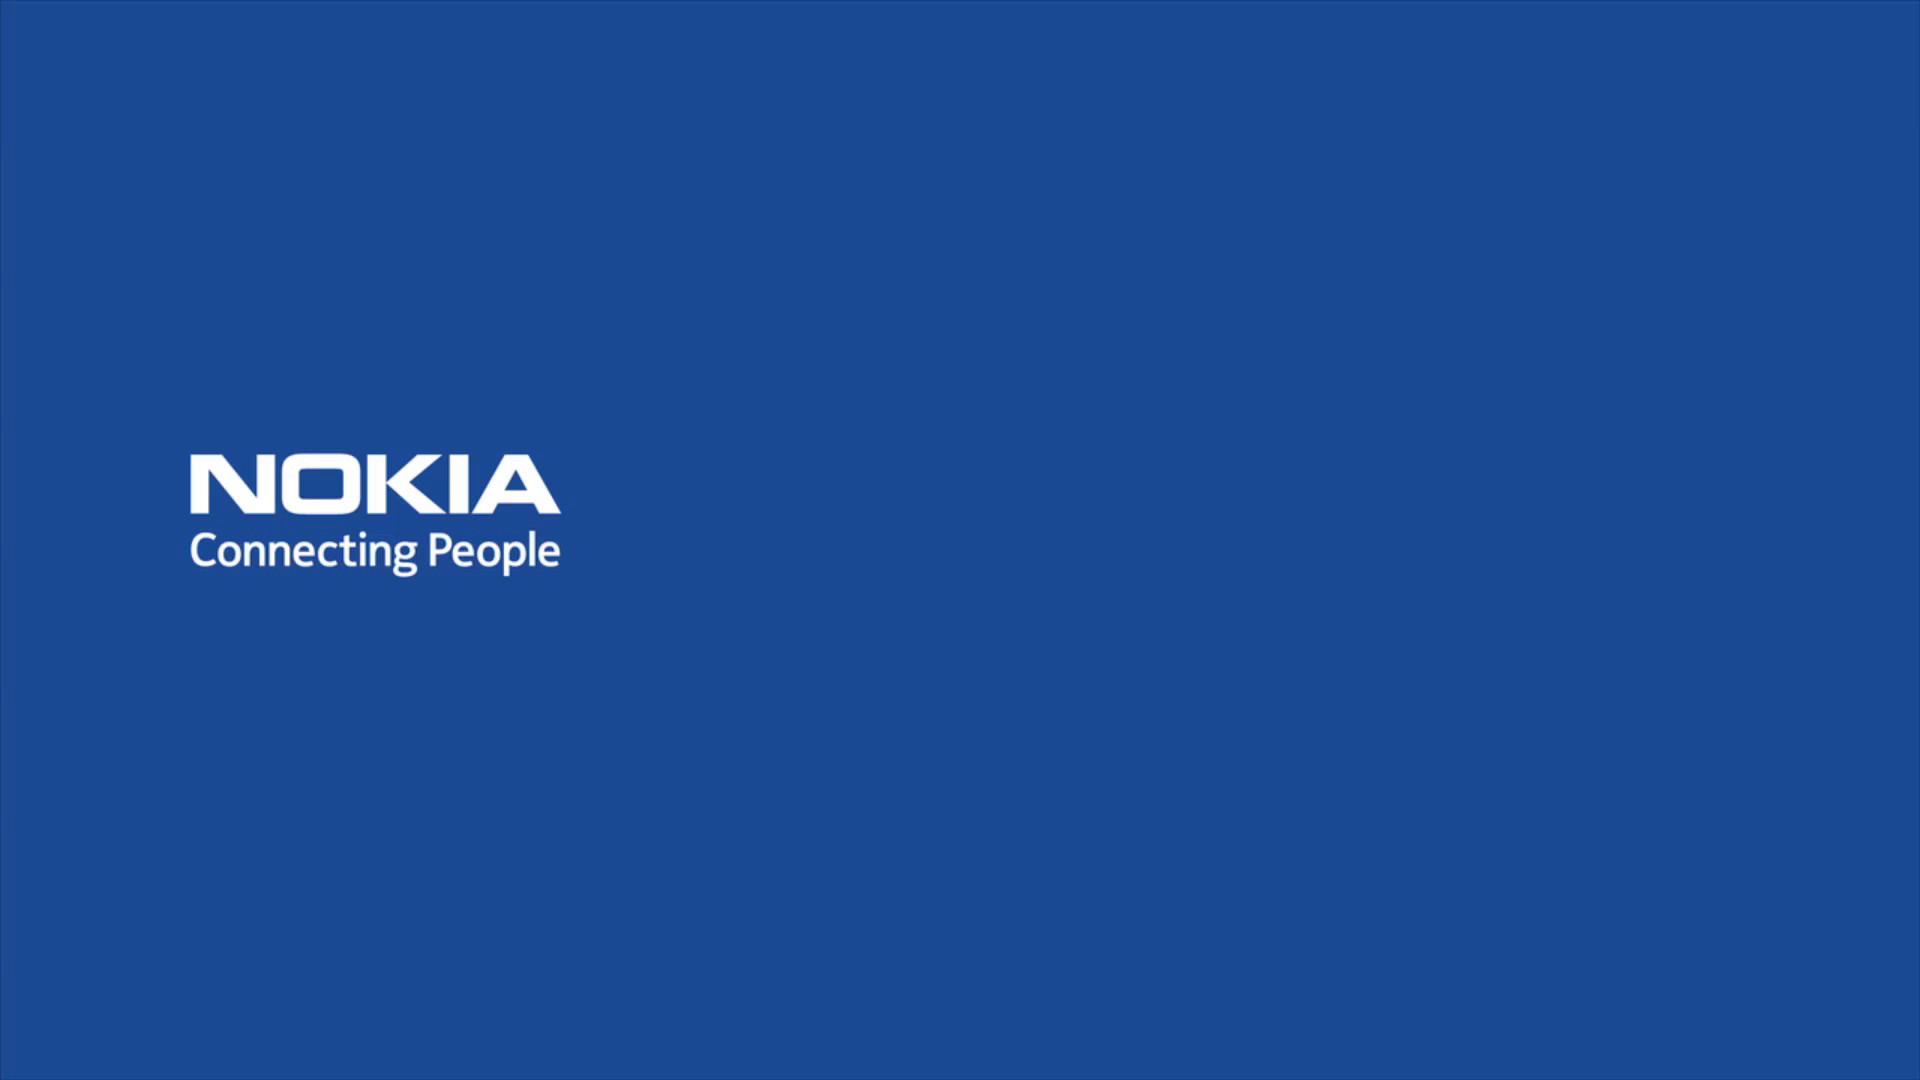 1920x1080 Nokia Logo Wallpapers